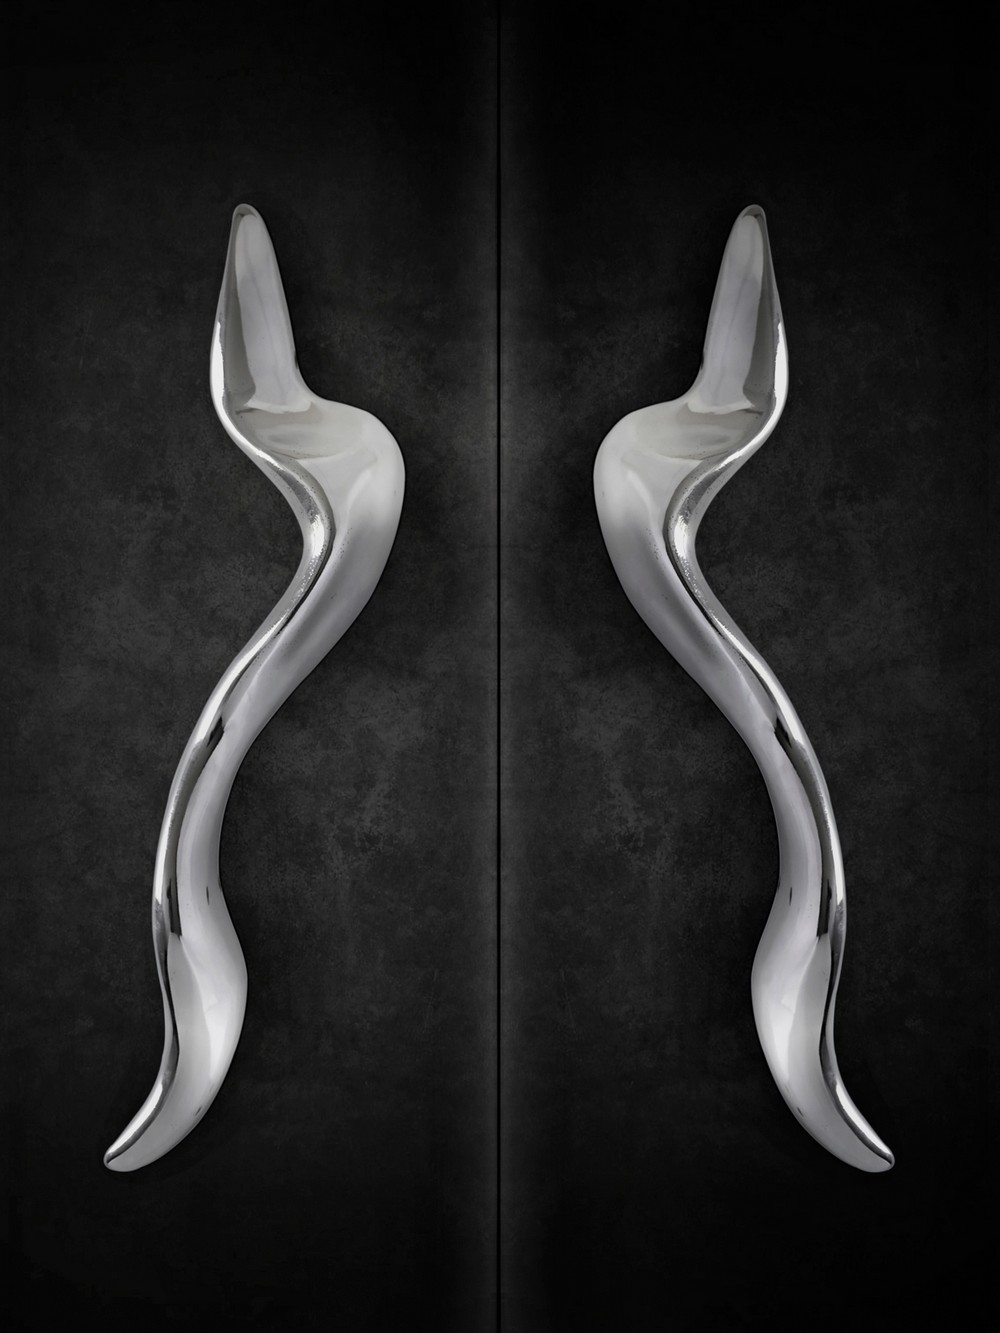 5 Oversized Door Pulls with a Distinctive Aesthetic 5 oversized door pulls 5 Oversized Door Pulls with a Distinctive Aesthetic 5 Oversized Door Pulls with a Distinctive Aesthetic 5